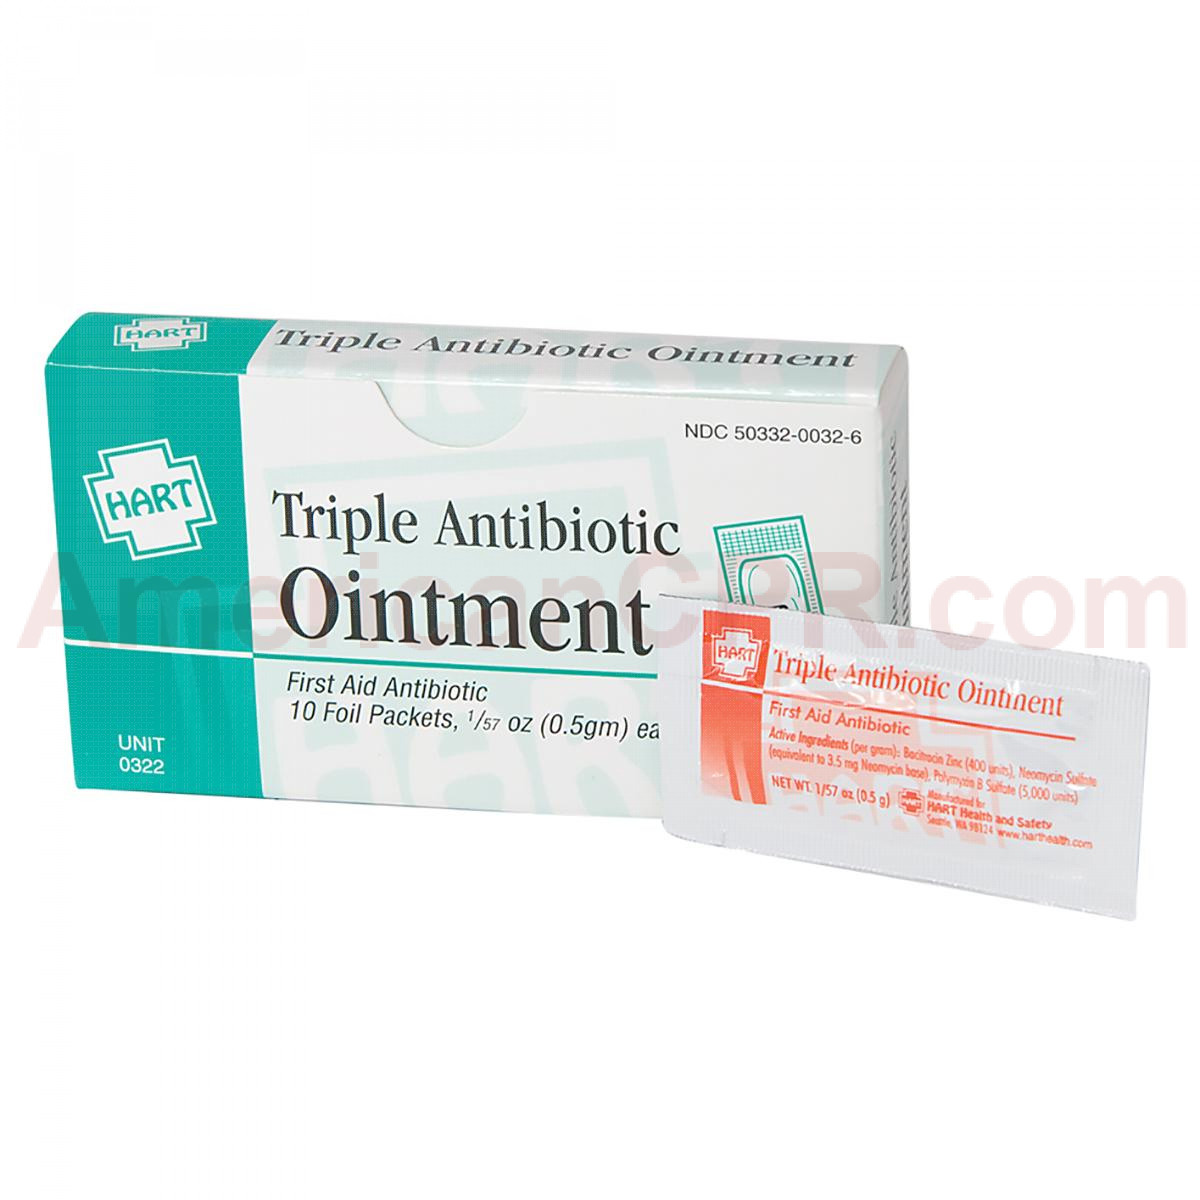 Triple Antibiotic Ointment, 10 per box, .5gm, Hart Health